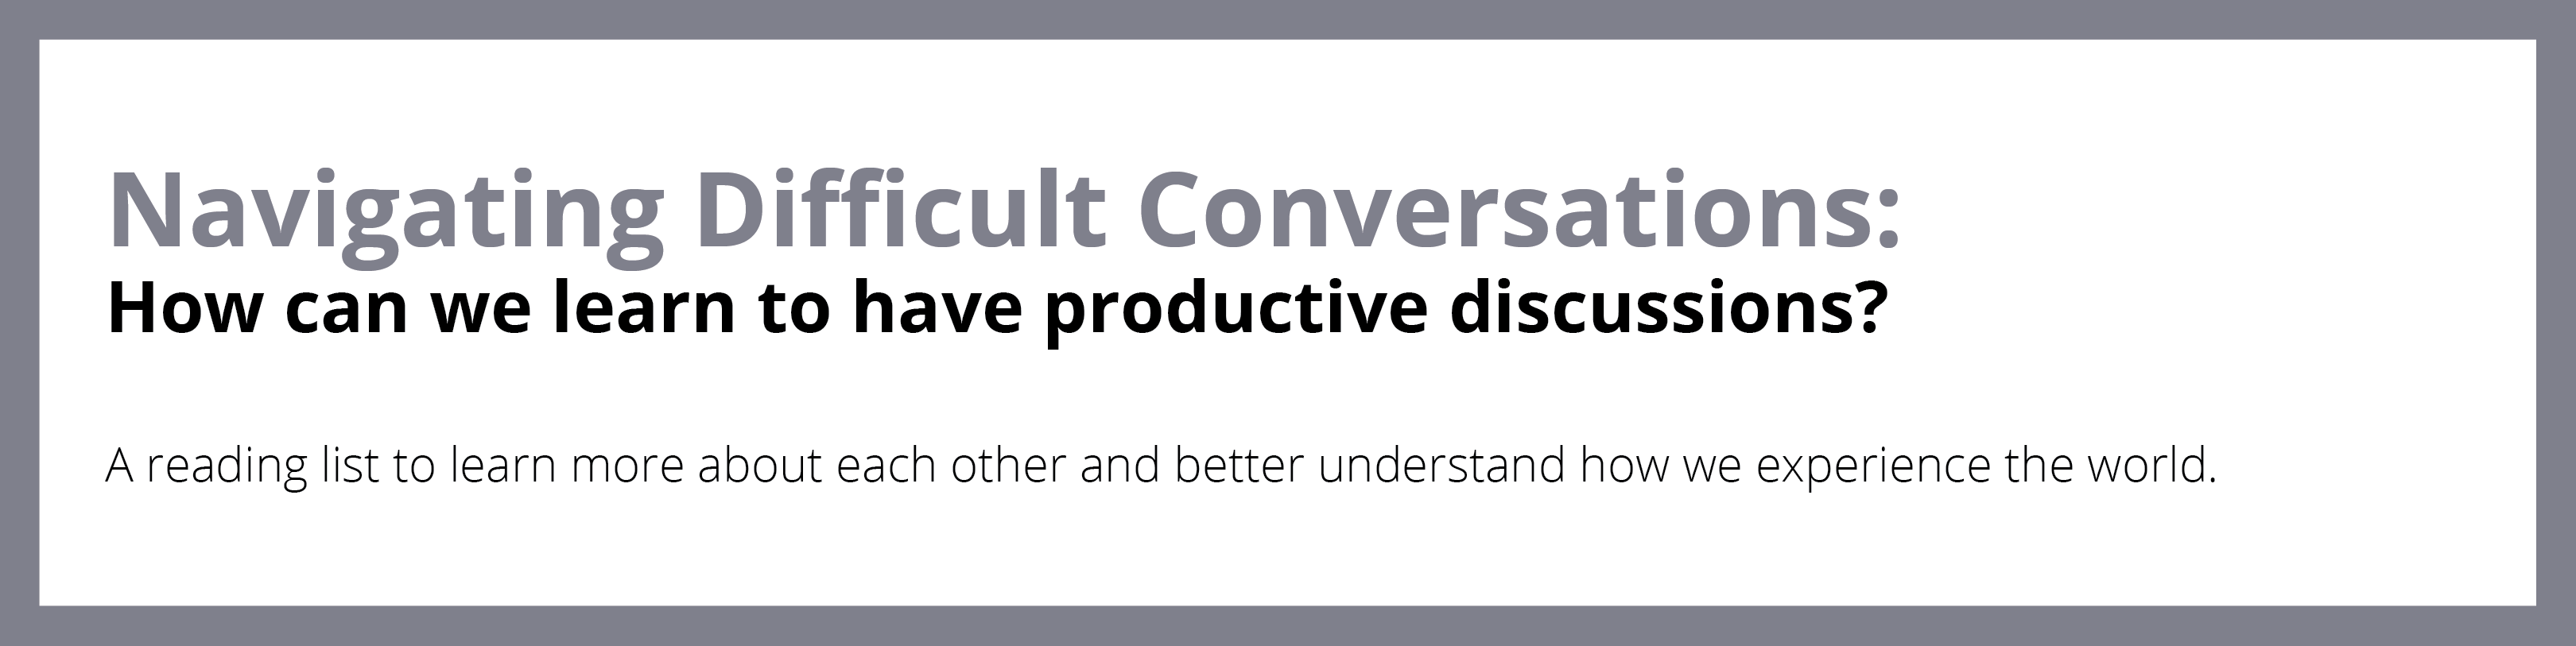 Navigating Difficult Discussions: A reading list to help us better understand each other